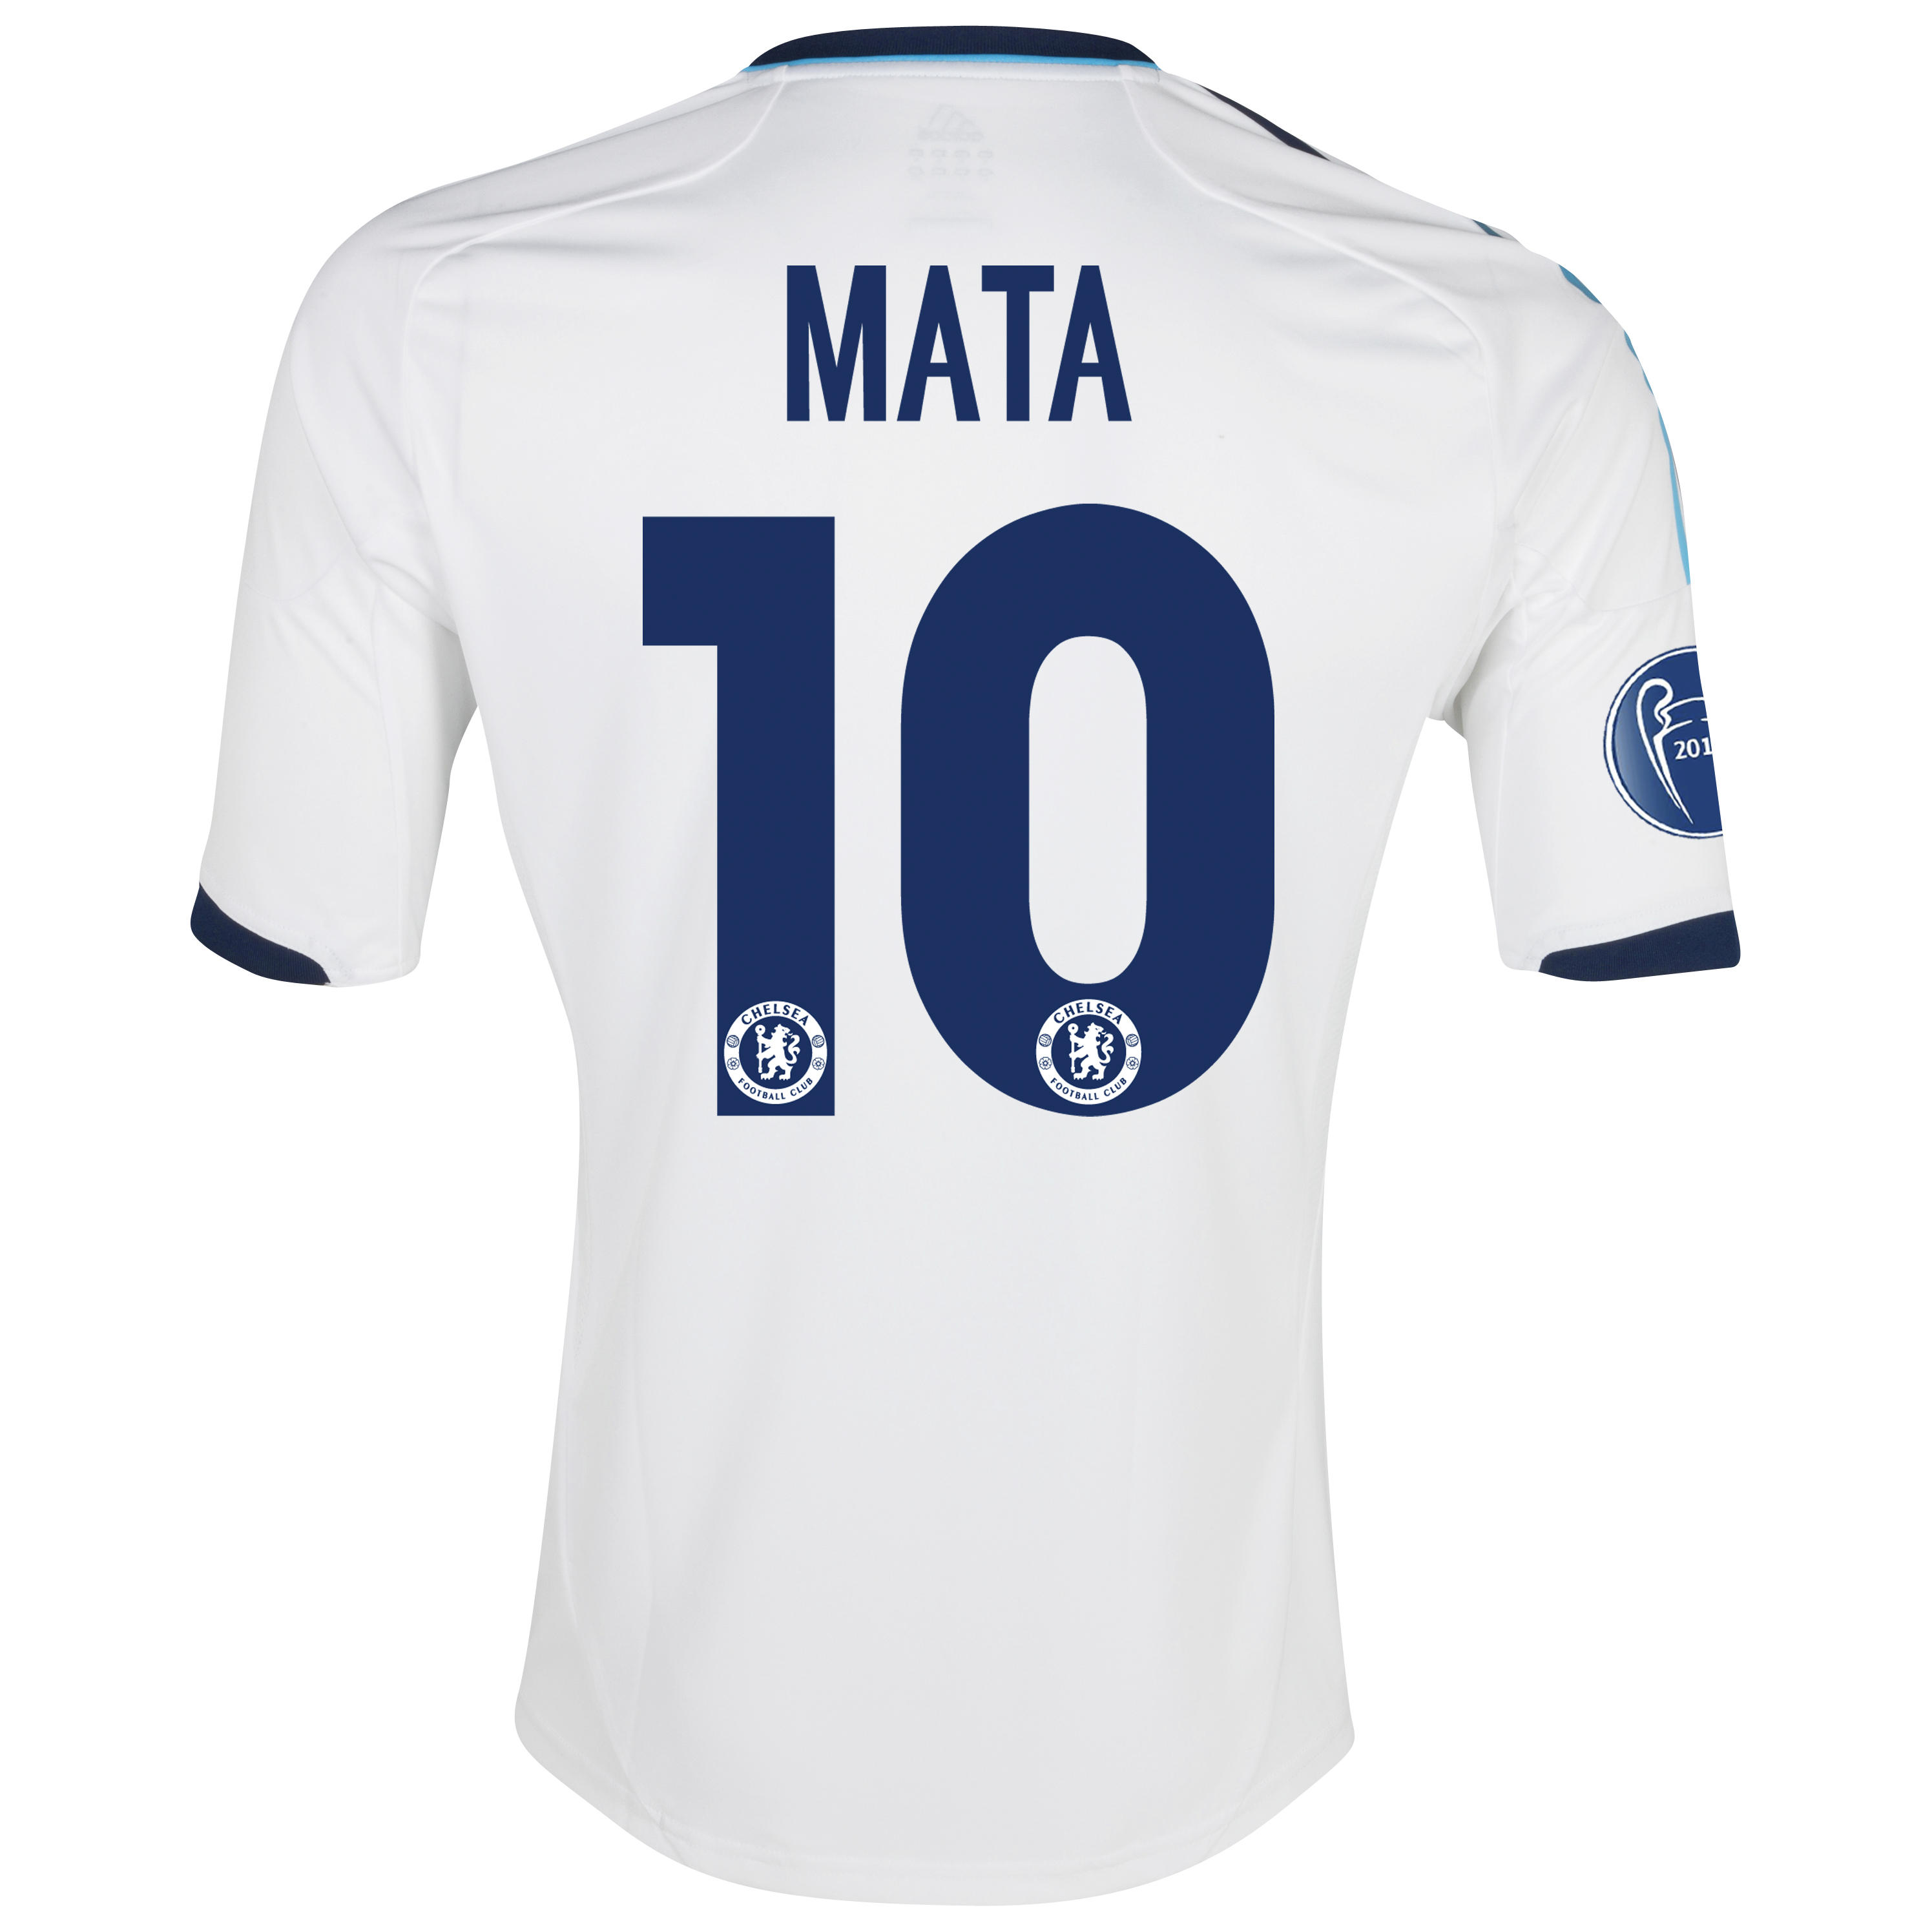 Chelsea UEFA Champions League Away Shirt 2012/13 - Youths with Mata 10 printing